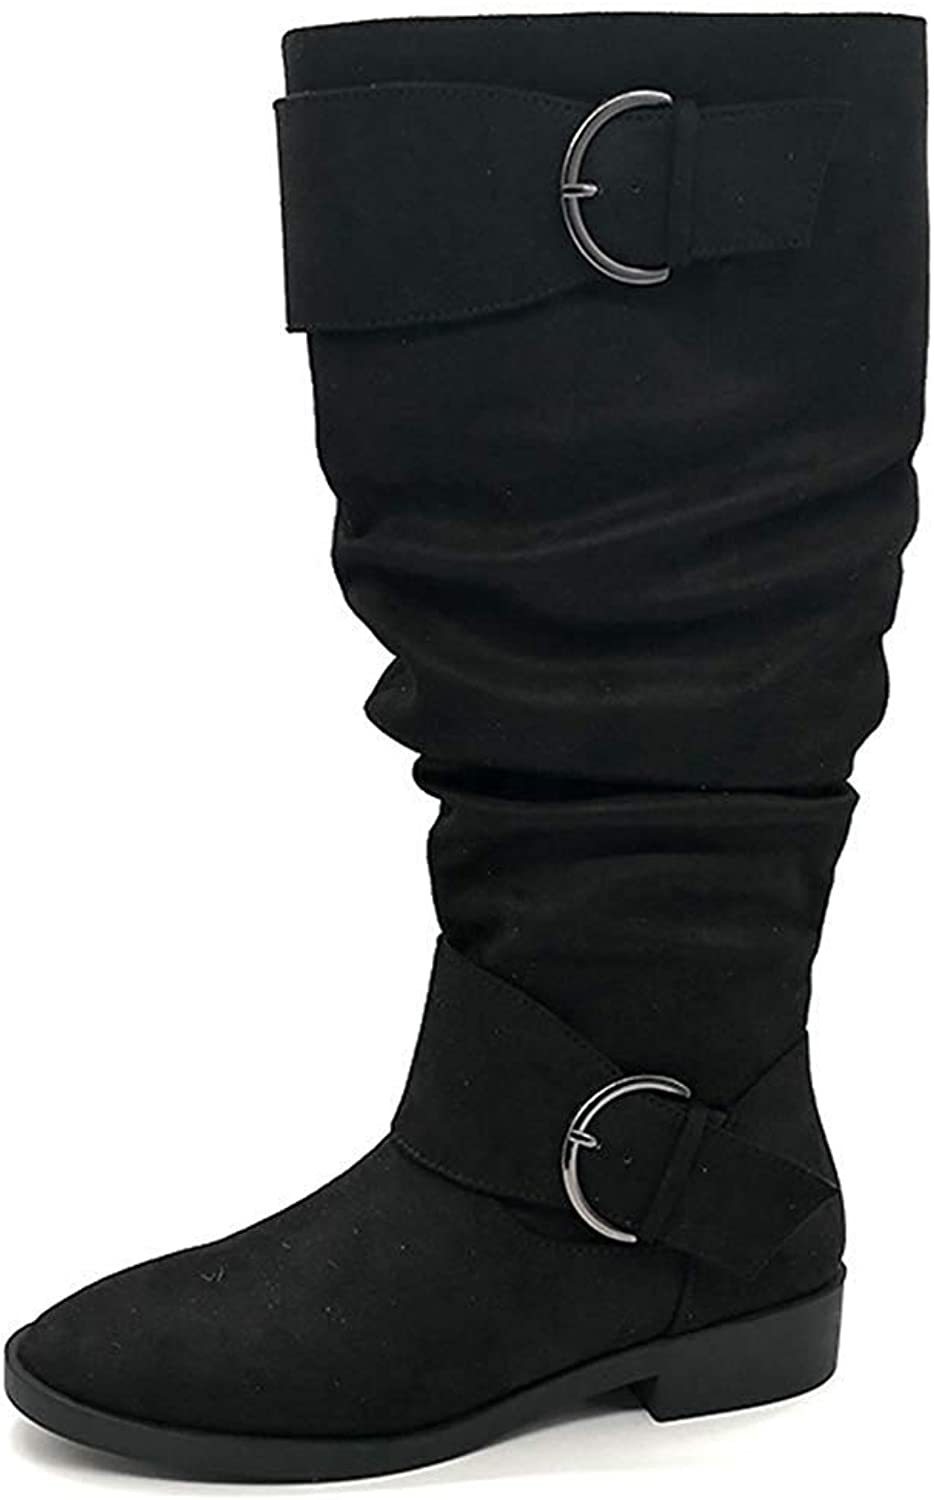 Gedigits Women's Stylish Buckle Strap Round Toe Low Heel Side Zipper Slouchy Over The Knee Boots Black 5 M US